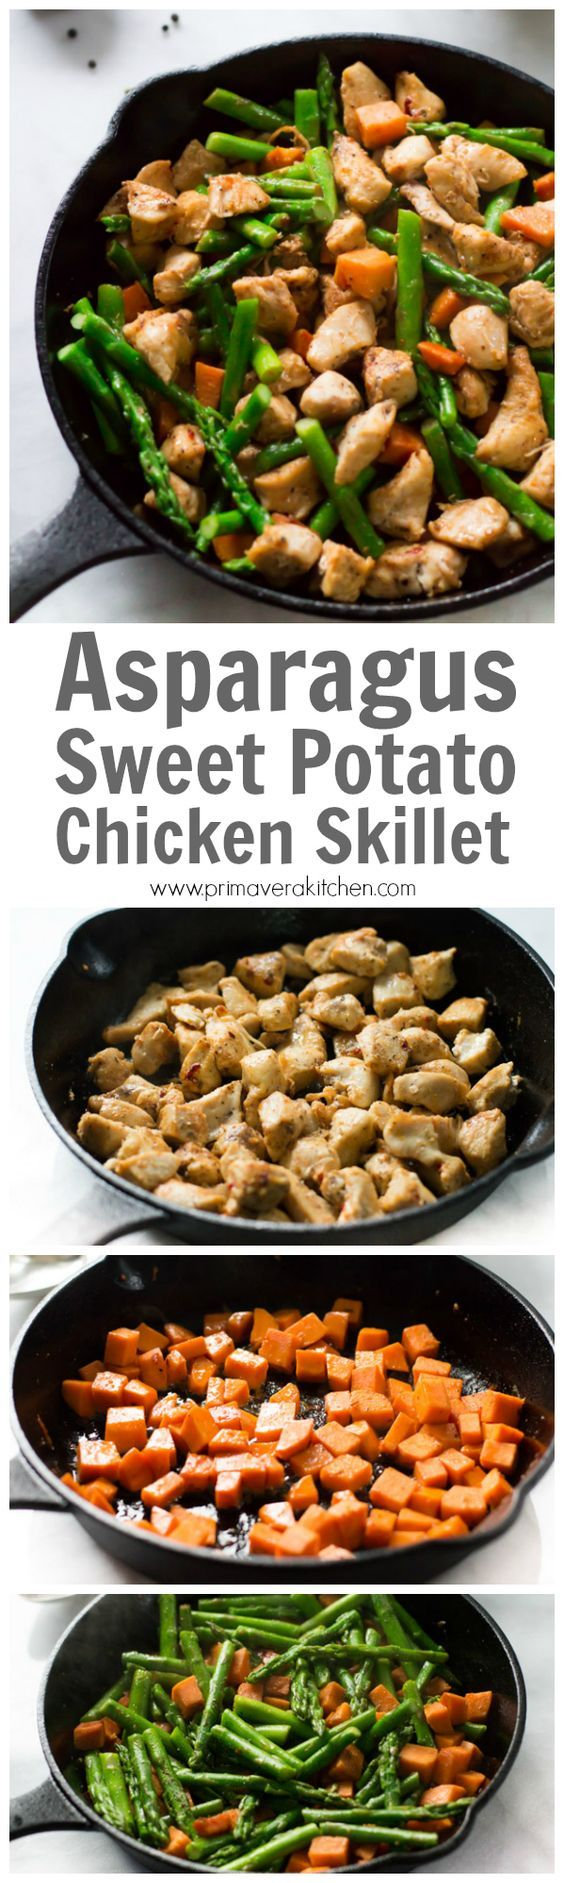 Asparagus Sweet Potato Chicken Skillet | Recipe